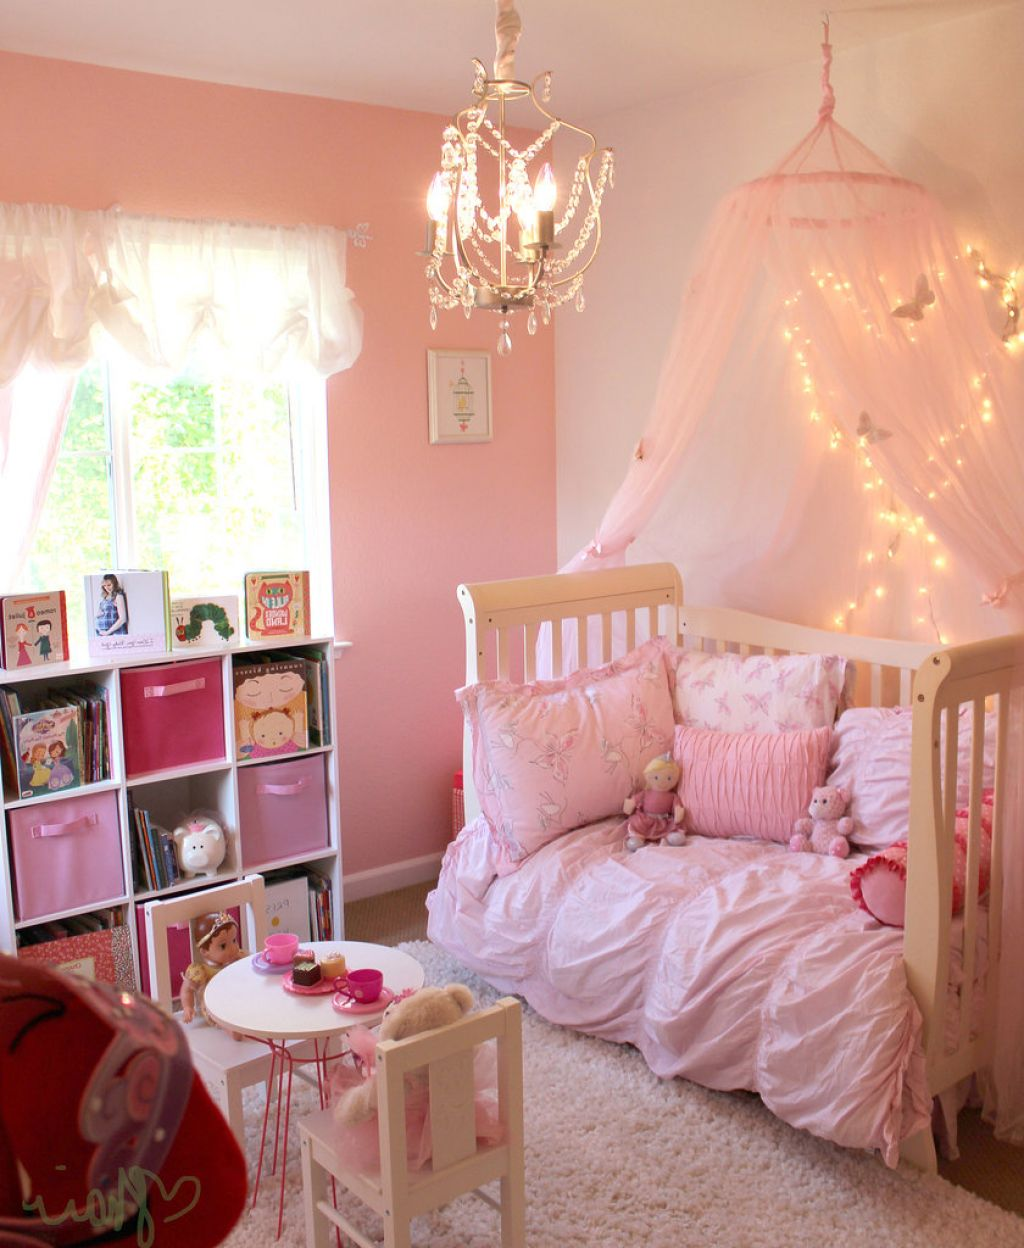 32 dreamy bedroom designs for your little princess. Black Bedroom Furniture Sets. Home Design Ideas